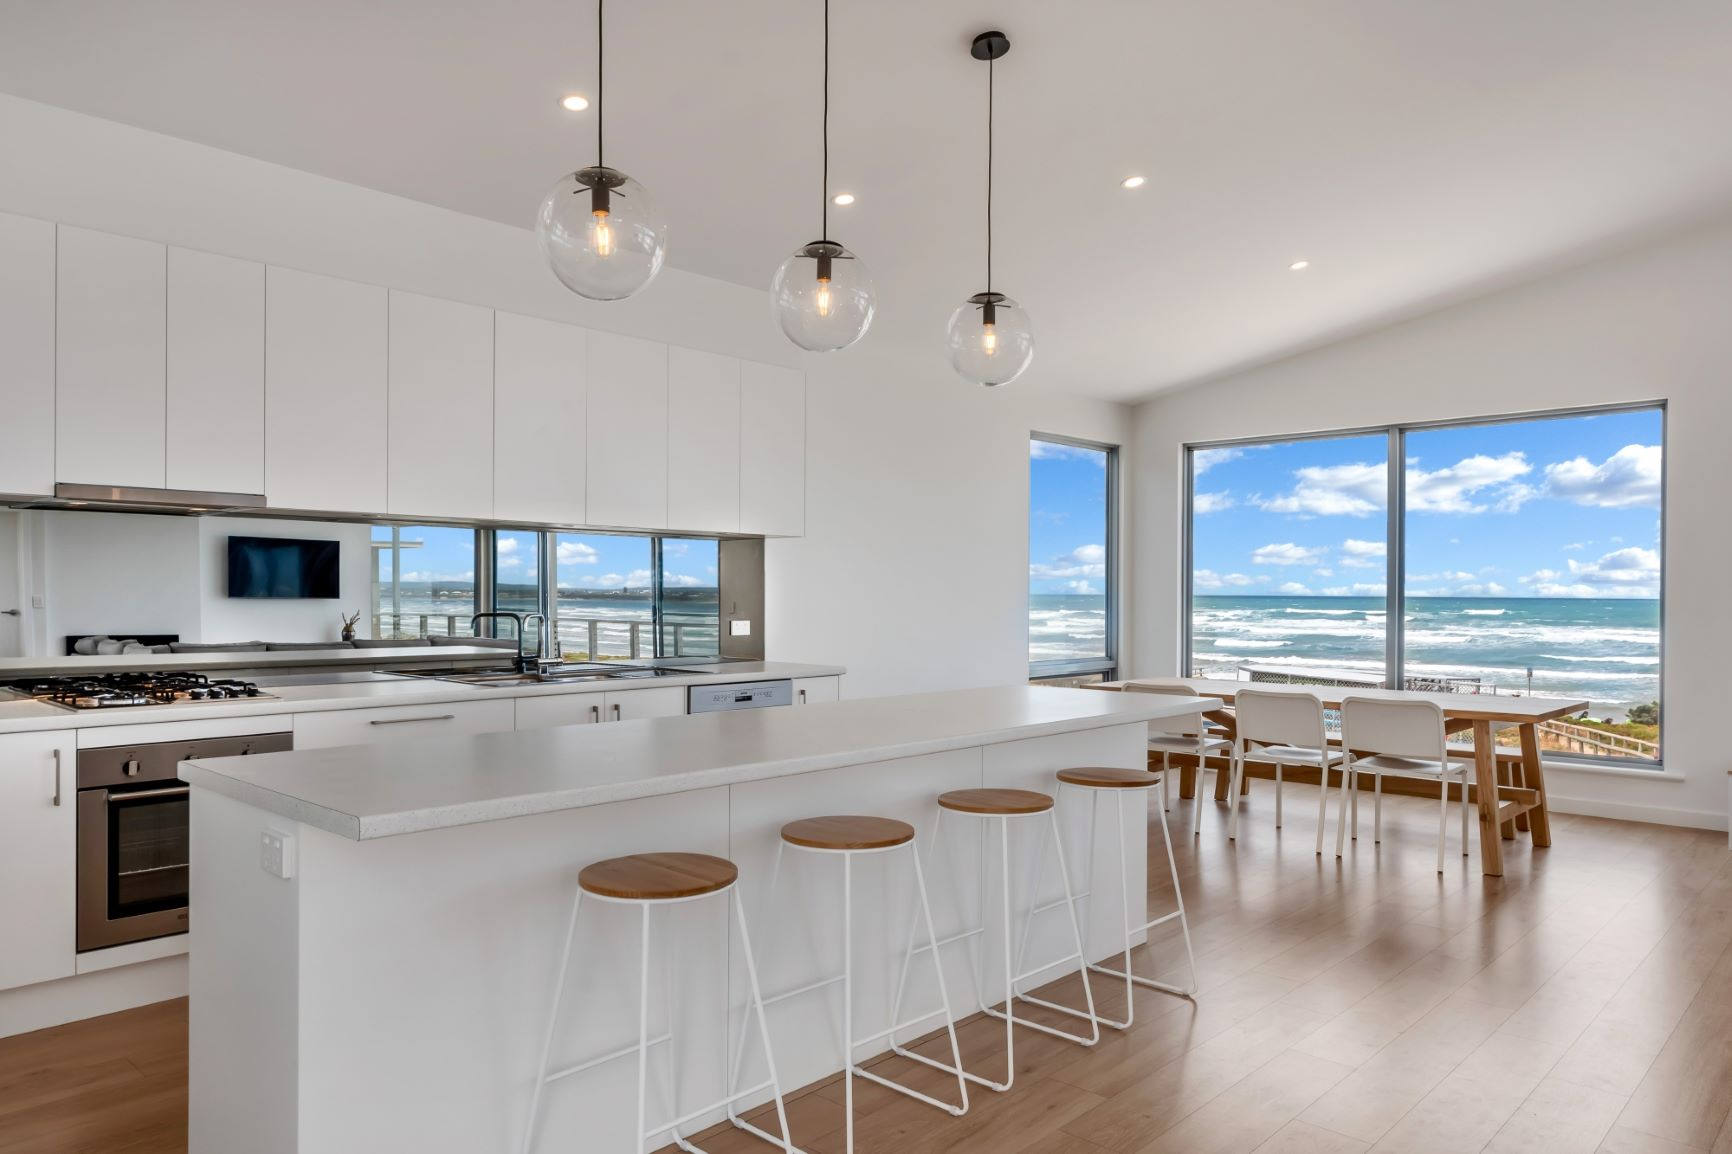 Award Winning, Custom Home, New Home, Two Storey, Builders, Design, Middleton SA, Fleurieu, Large Windows, Kitchen, Gas Stove Top, Splashback, Ocean View